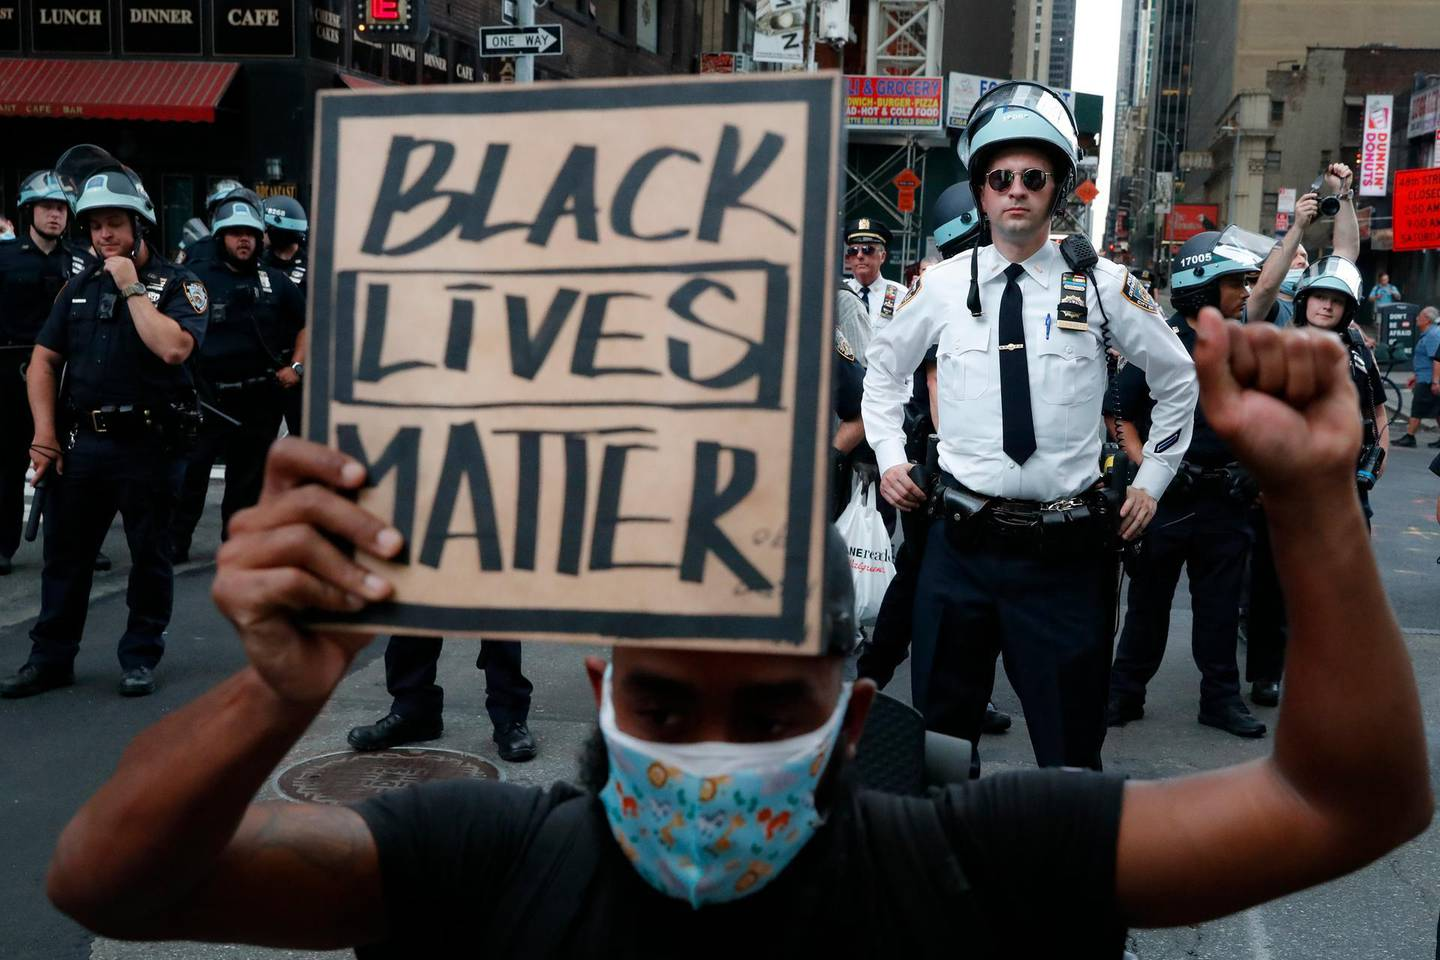 Police officer tail a group of protesters marching past Times Square, Thursday, June 4, 2020, in the Manhattan borough of New York. Protests continued following the death of George Floyd, who died after being restrained by Minneapolis police officers on May 25. (AP Photo/John Minchillo)